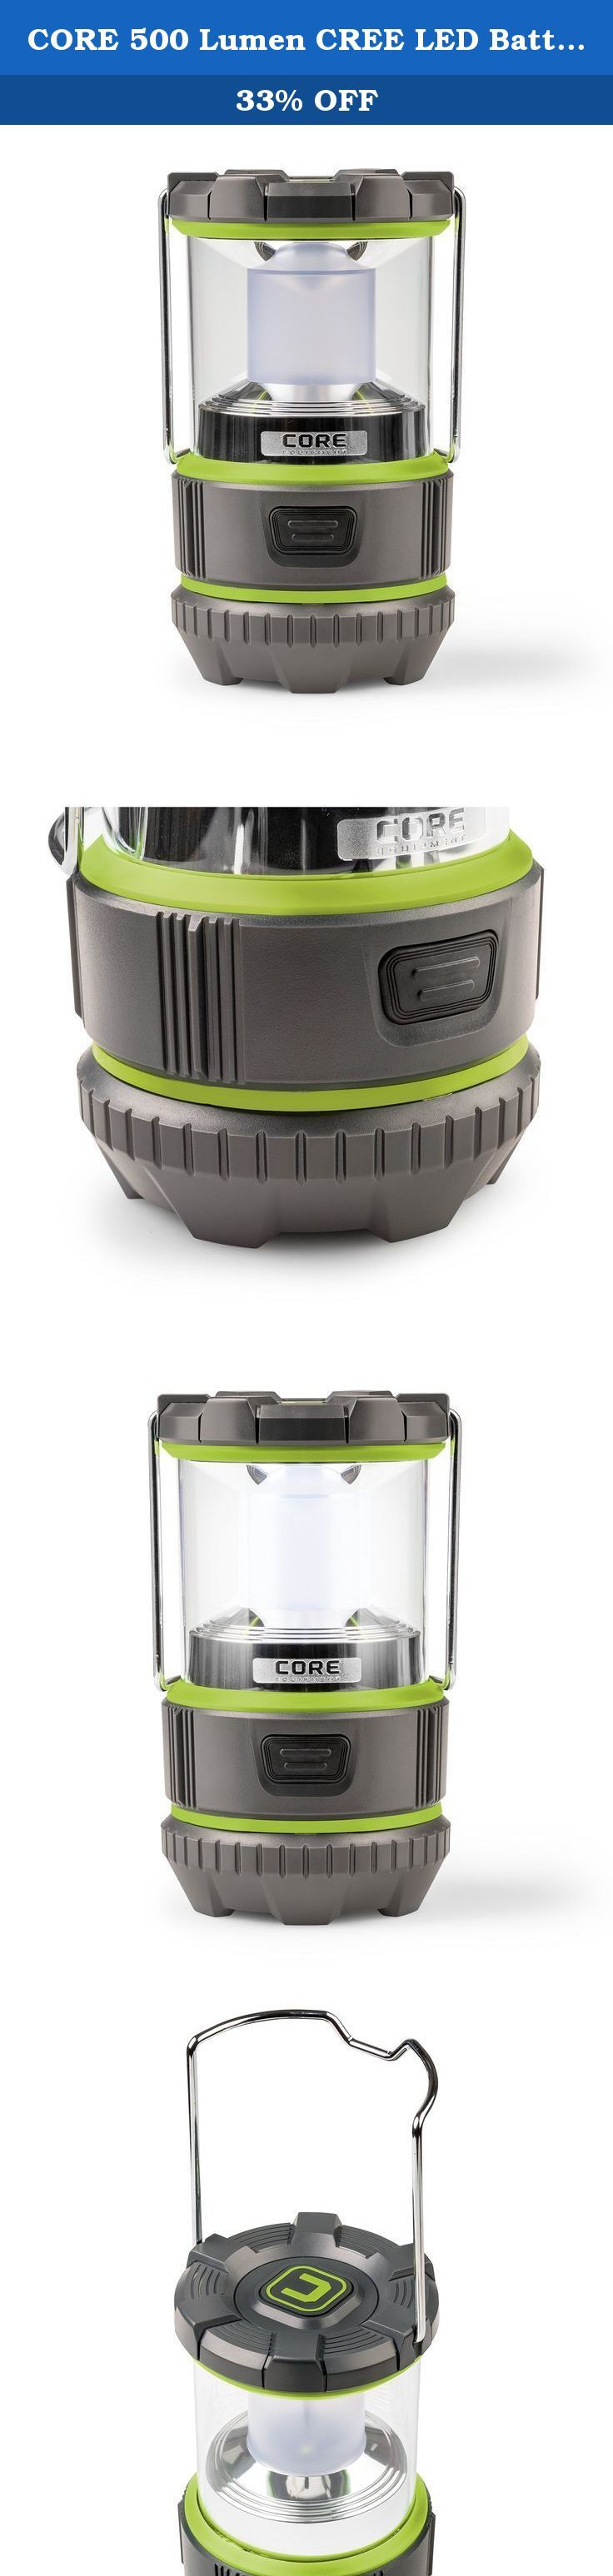 CORE 500 Lumen CREE LED Battery Lantern, 3 D batteries, Camp Lantern, Emergency Lantern. As one of the brightest LED lanterns on the market, the CORE 500 Lumen Camping Lantern features high and low lighting modes and boasts an industry leading CREE® LED bulb. Built with durable, high quality materials, its impact resistant construction and a shatter resistant lens ensure that your lantern can handle life outdoors. A sturdy steel handle allows for easy carrying or hanging for even better…